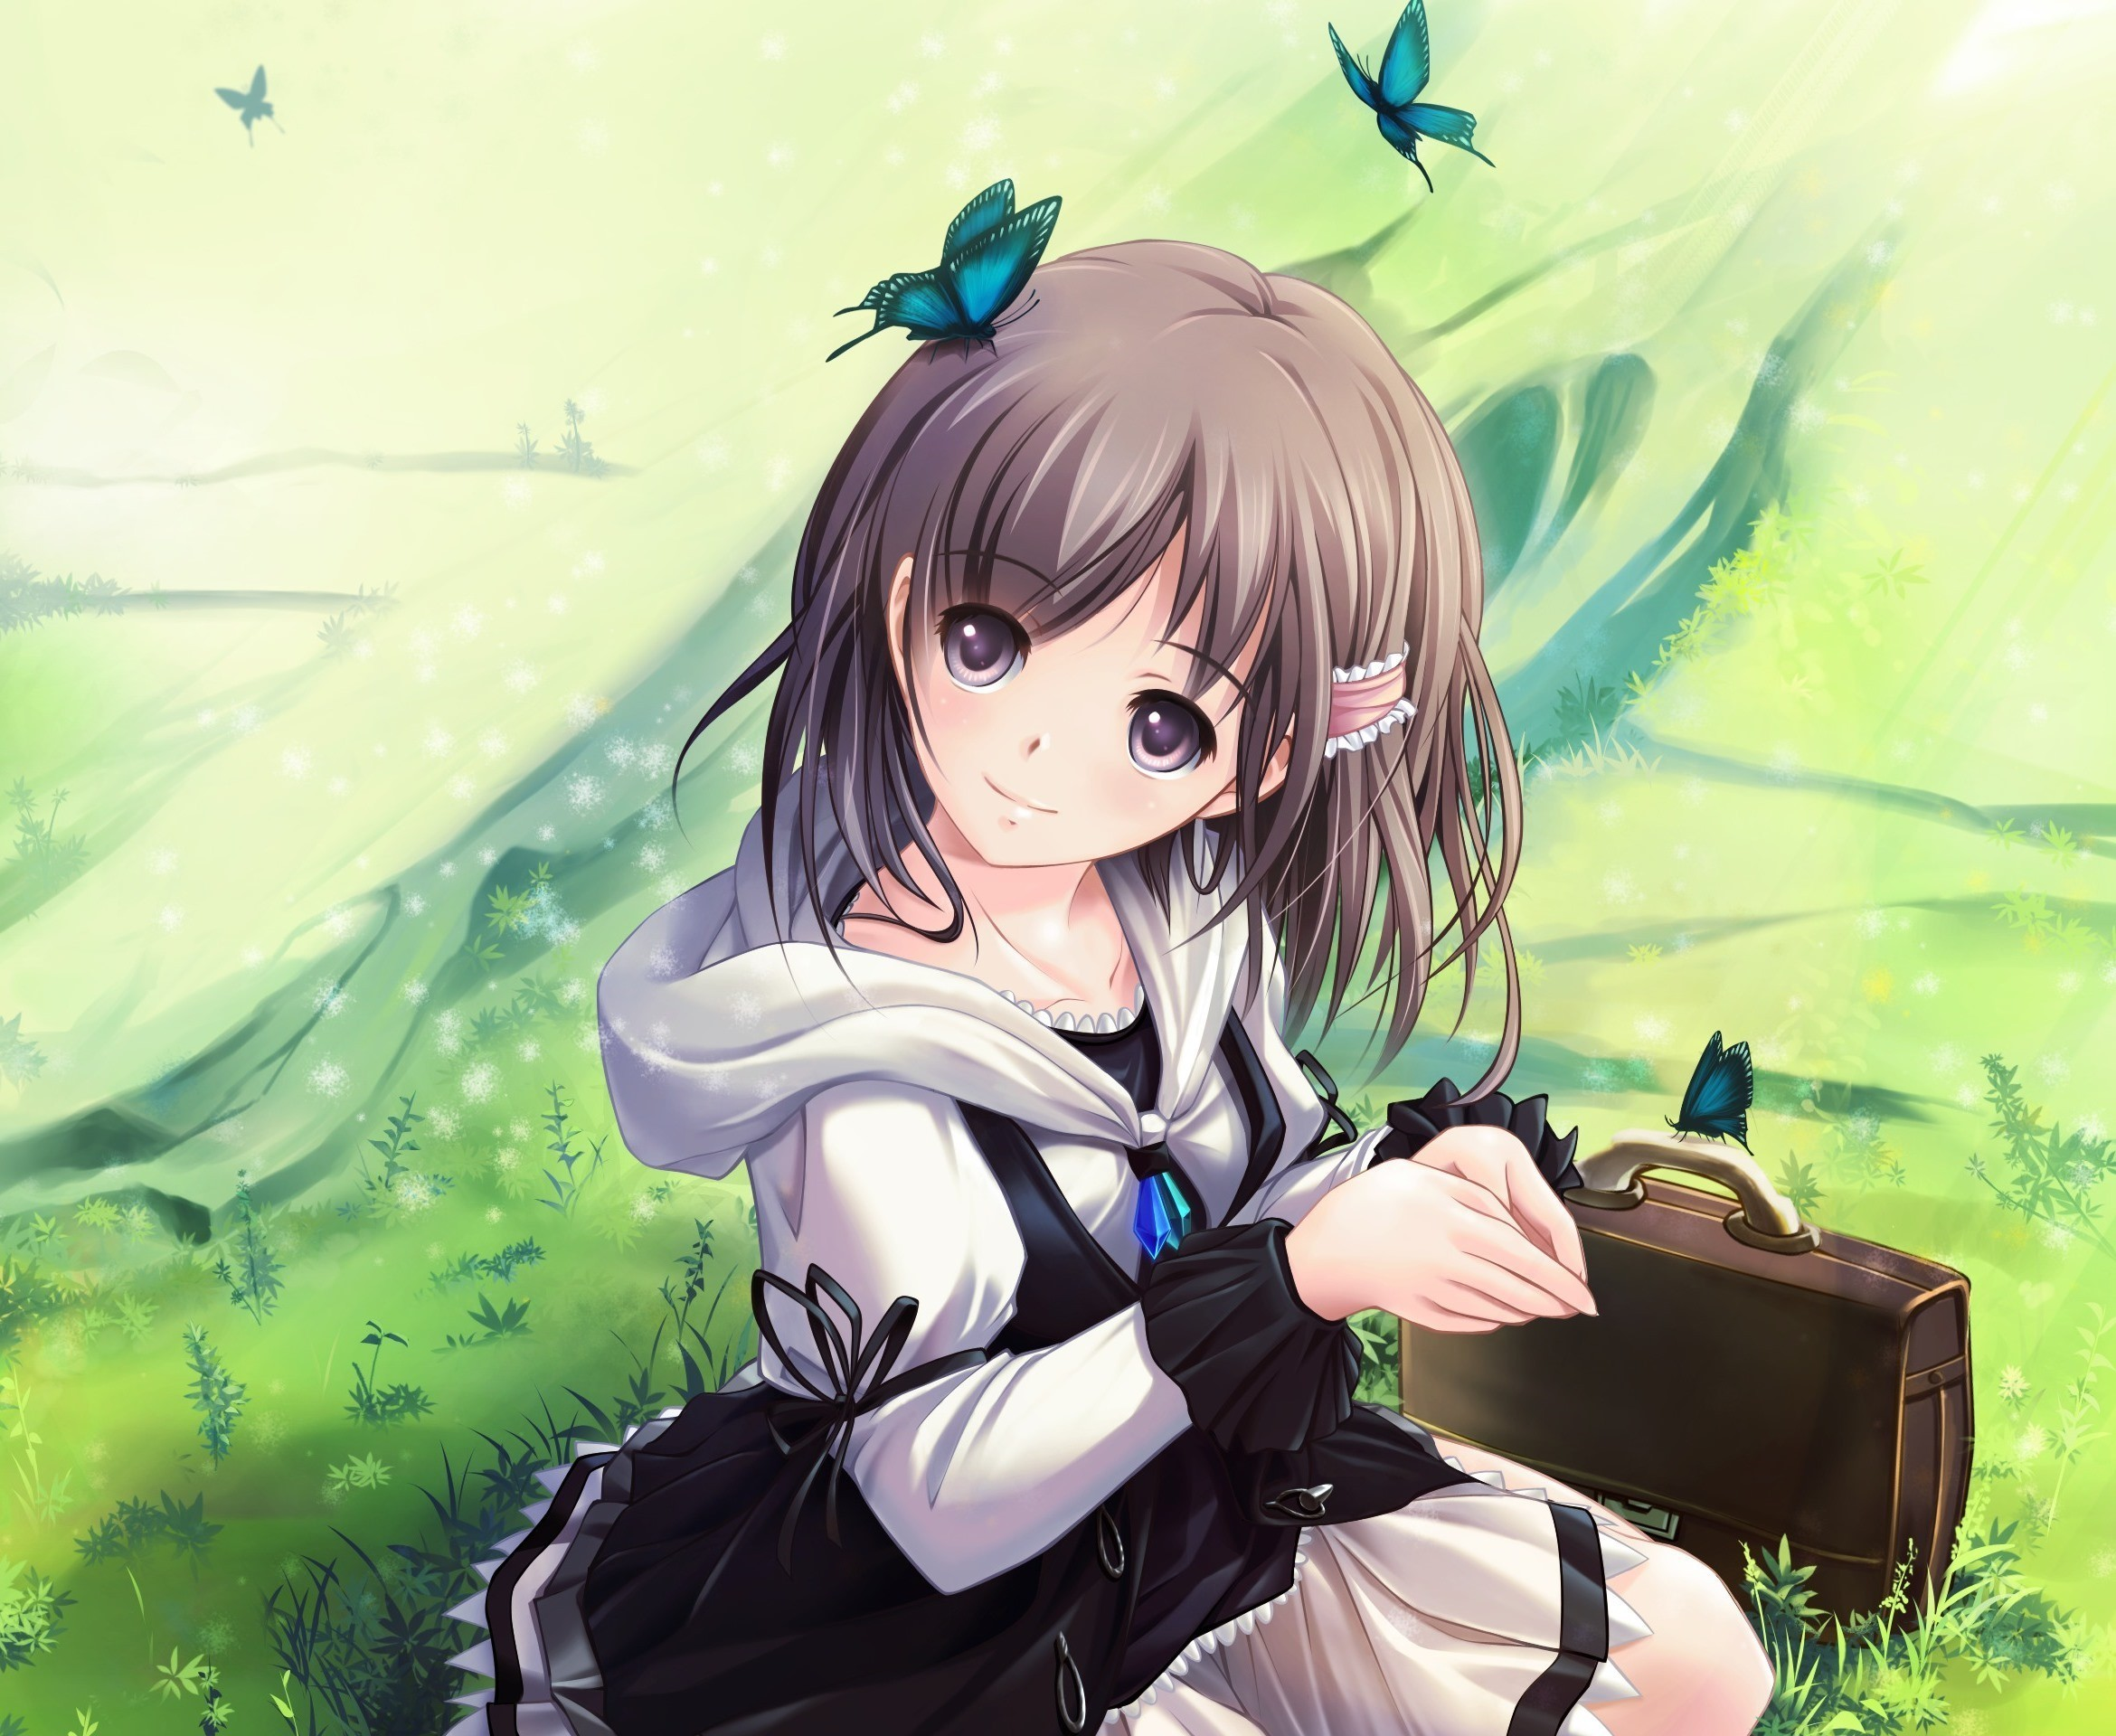 Anime girl hd wallpaper 1080p 83 images - Cartoon girl images hd ...